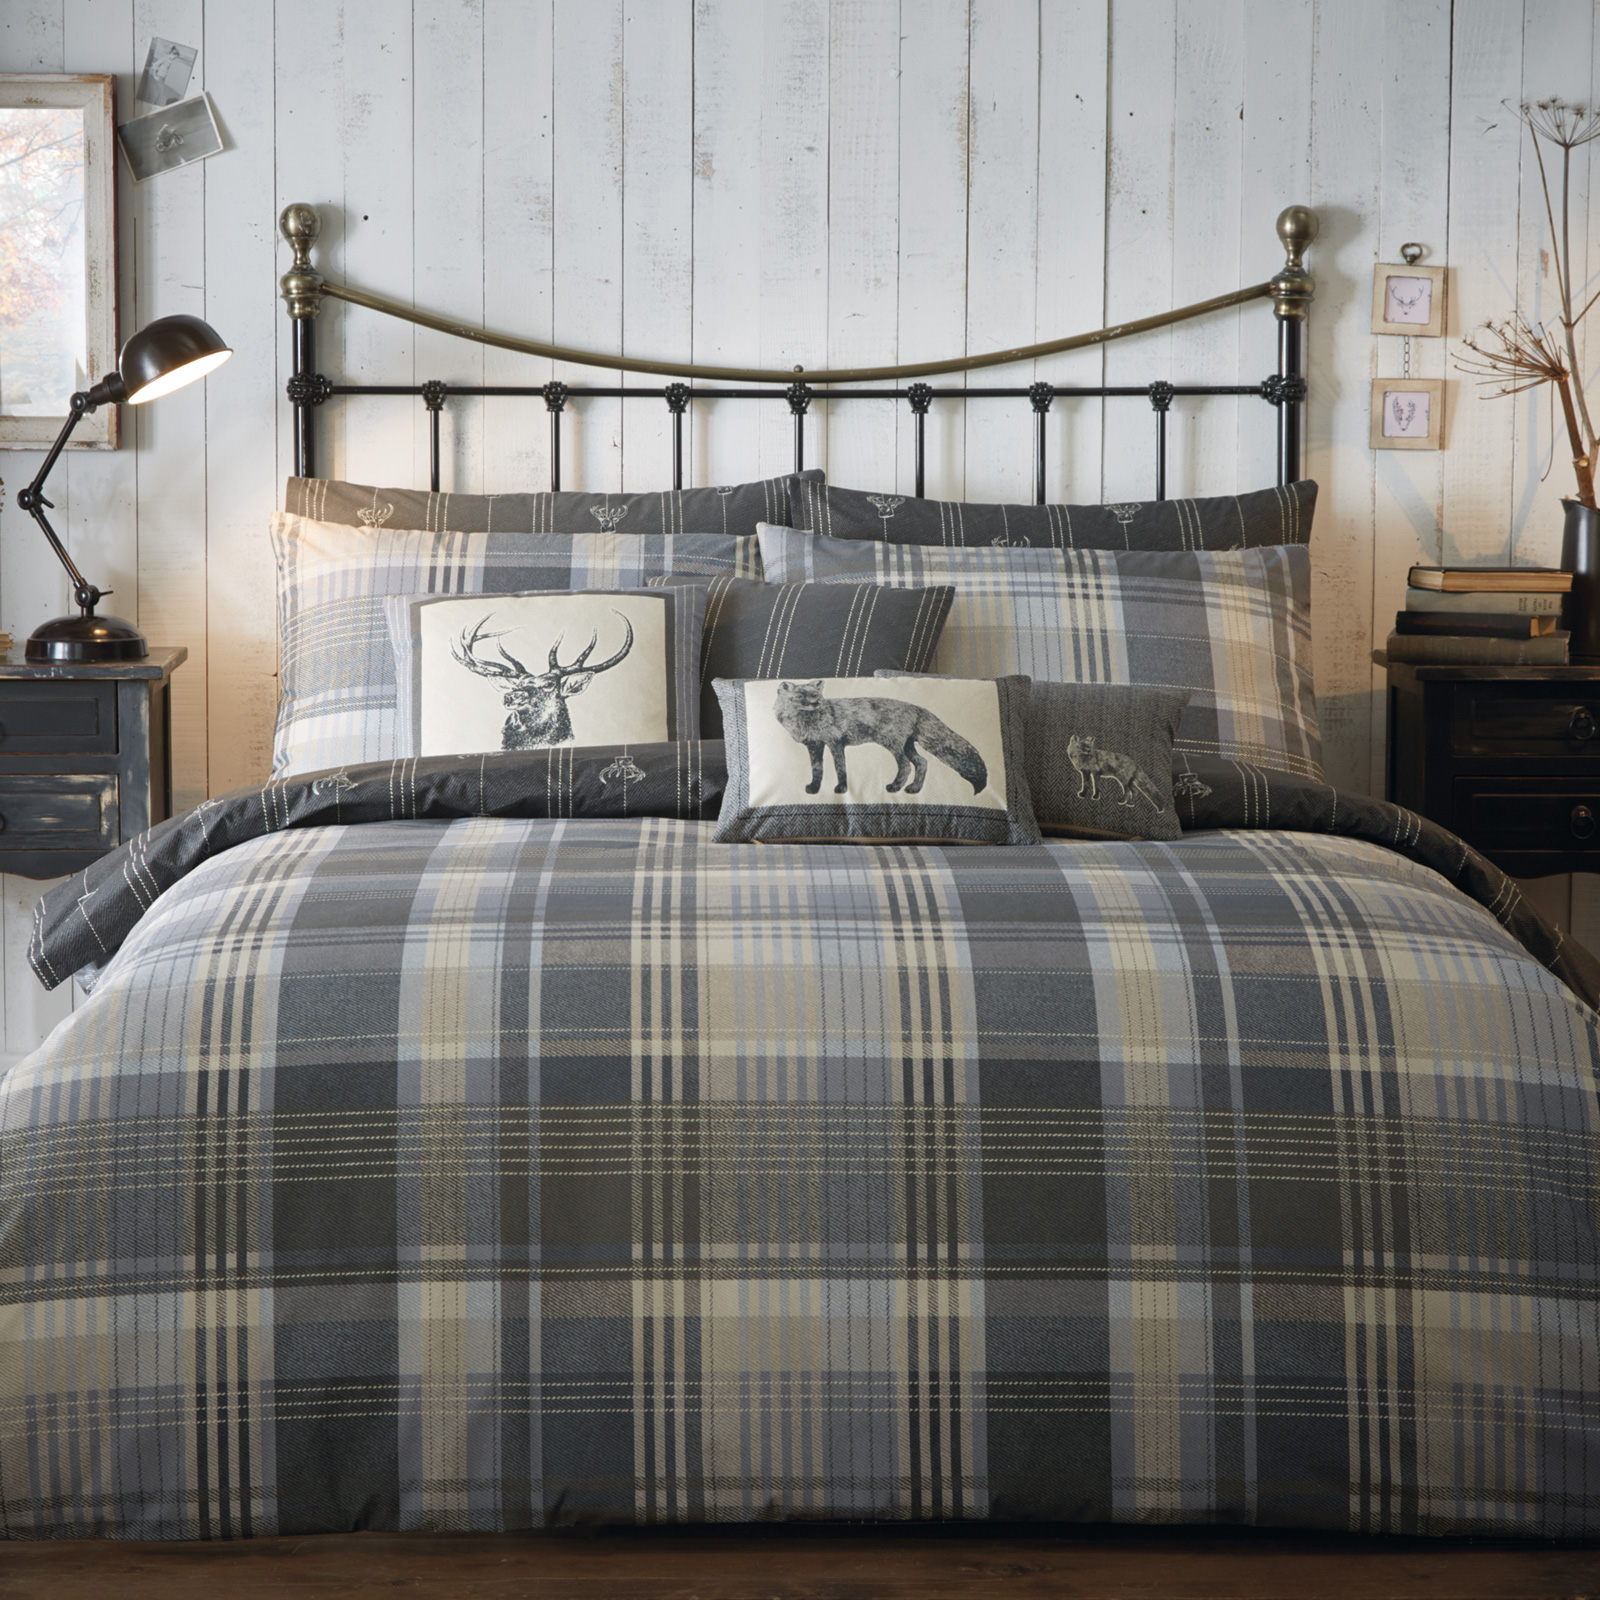 tartan 100 brushed cotton flannelette duvet cover set